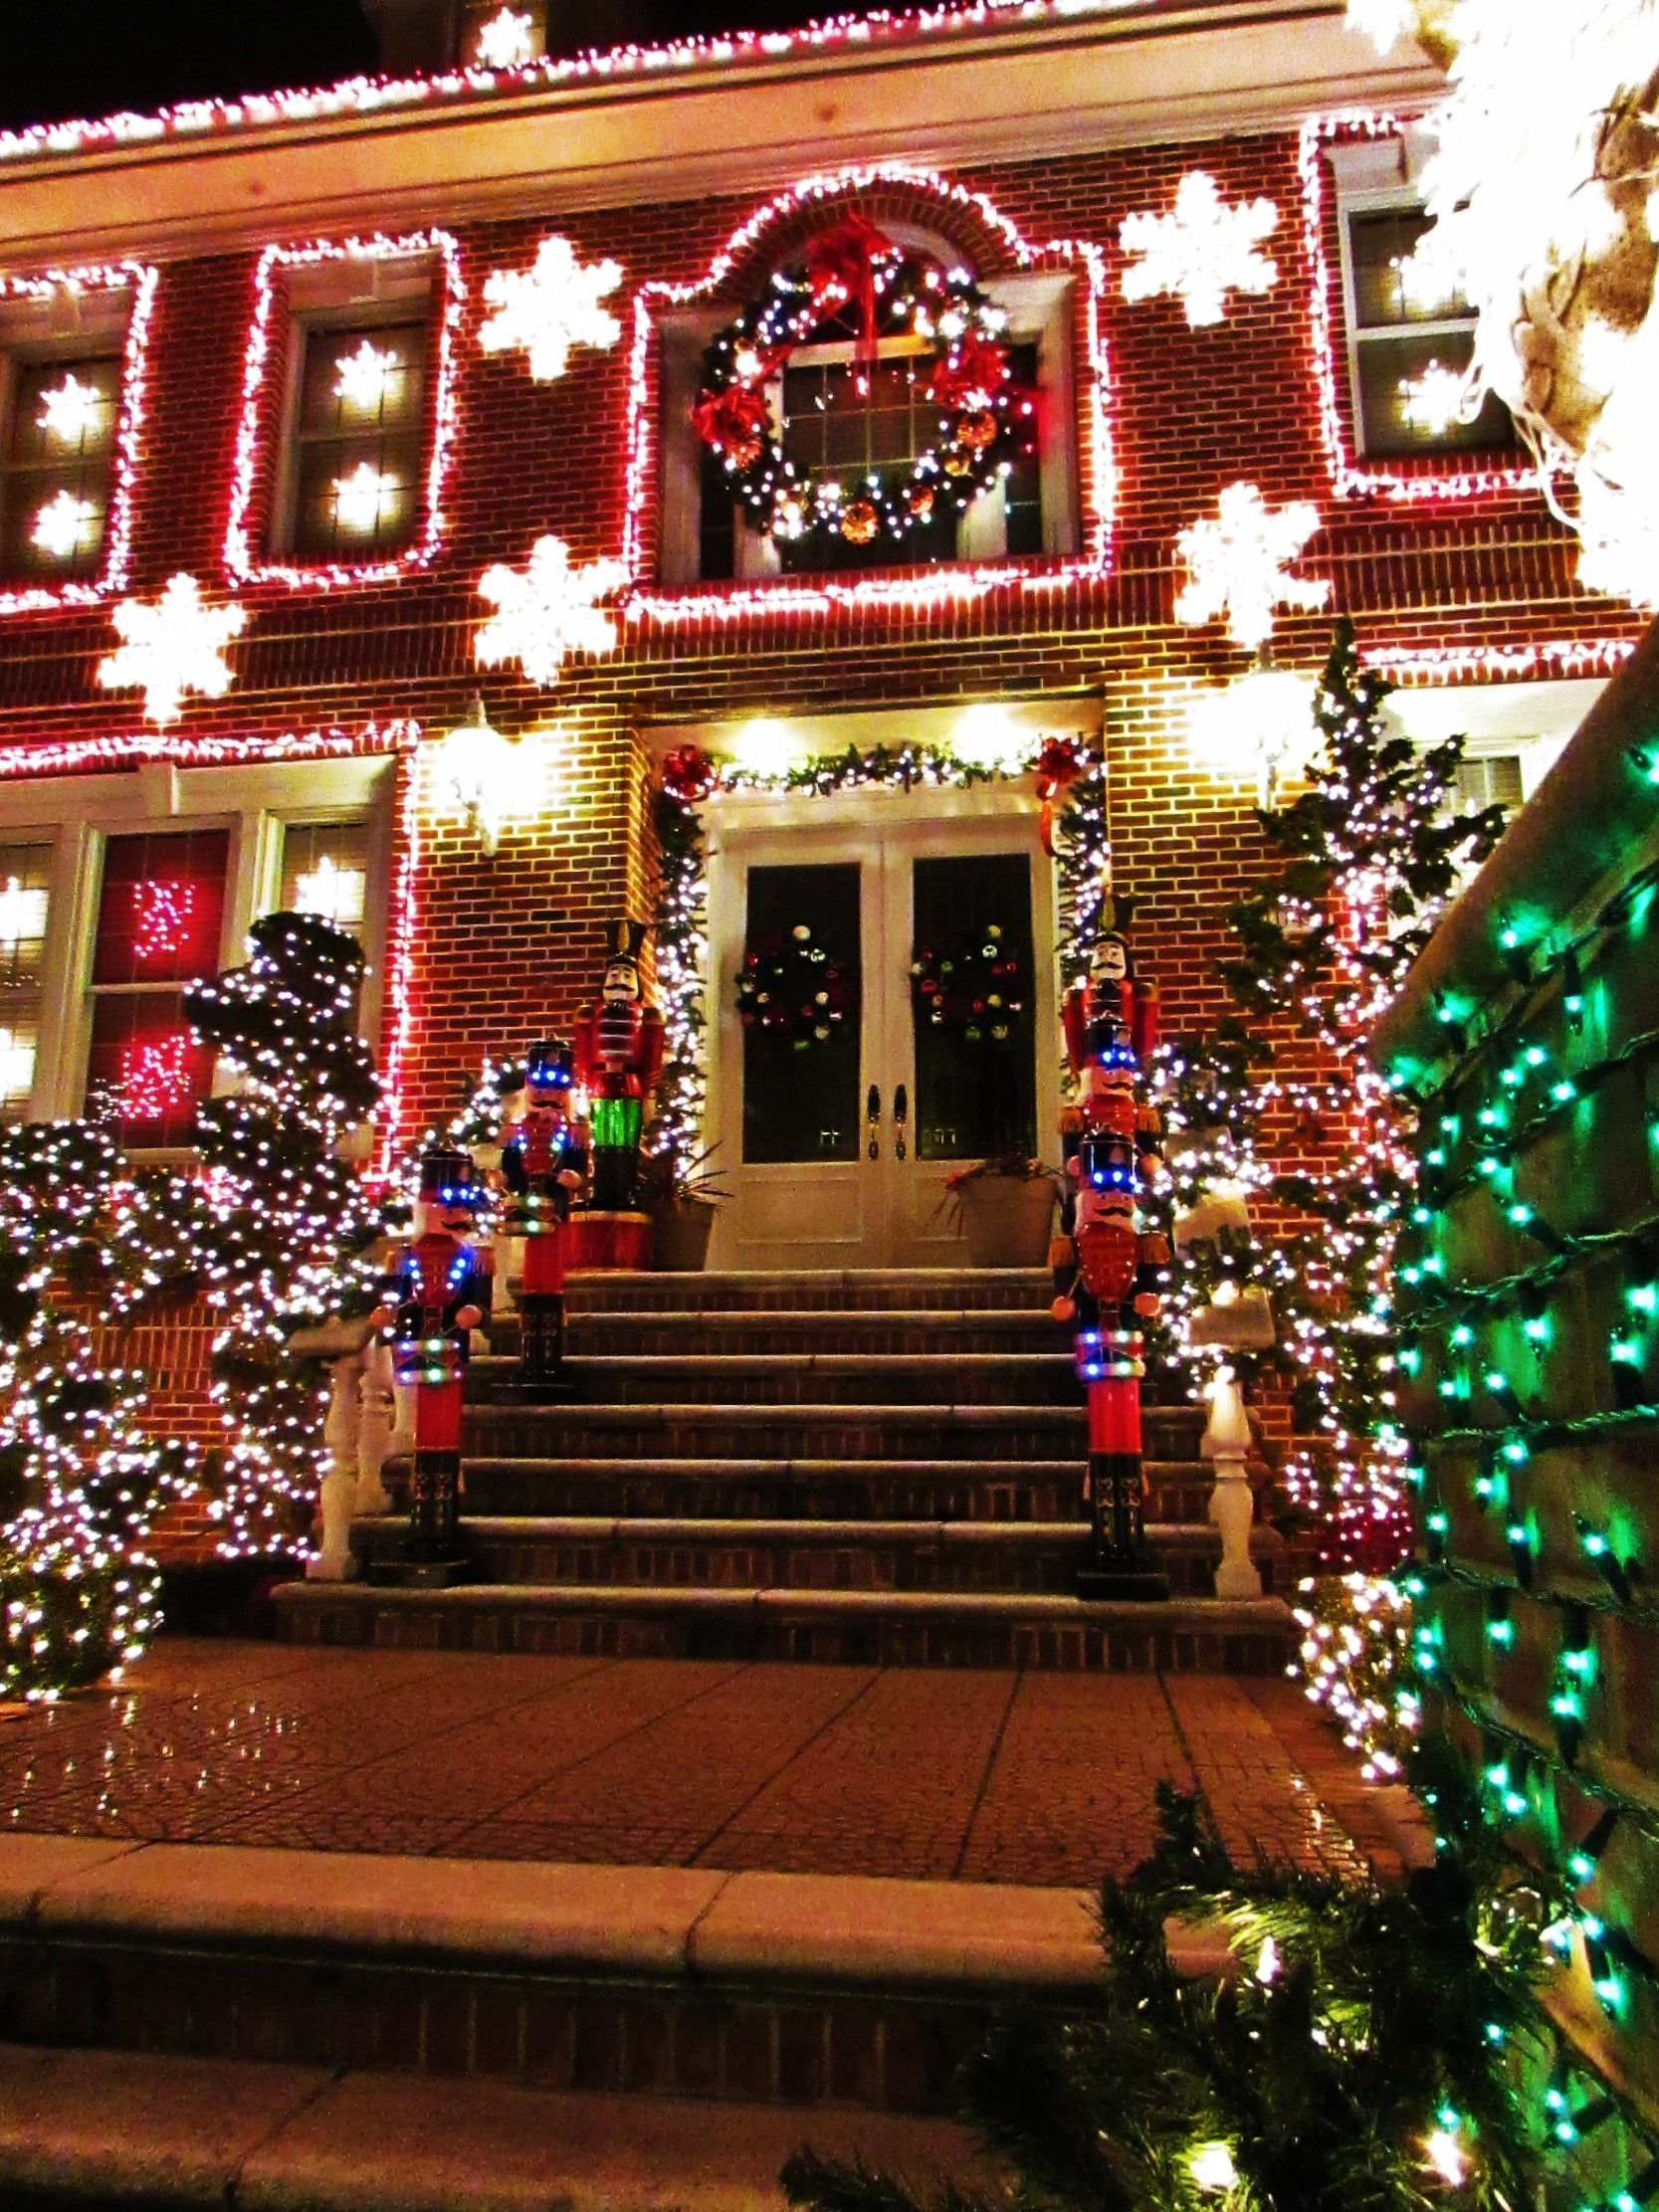 Dyker Heights My Gallery of NYC and the Boroughs